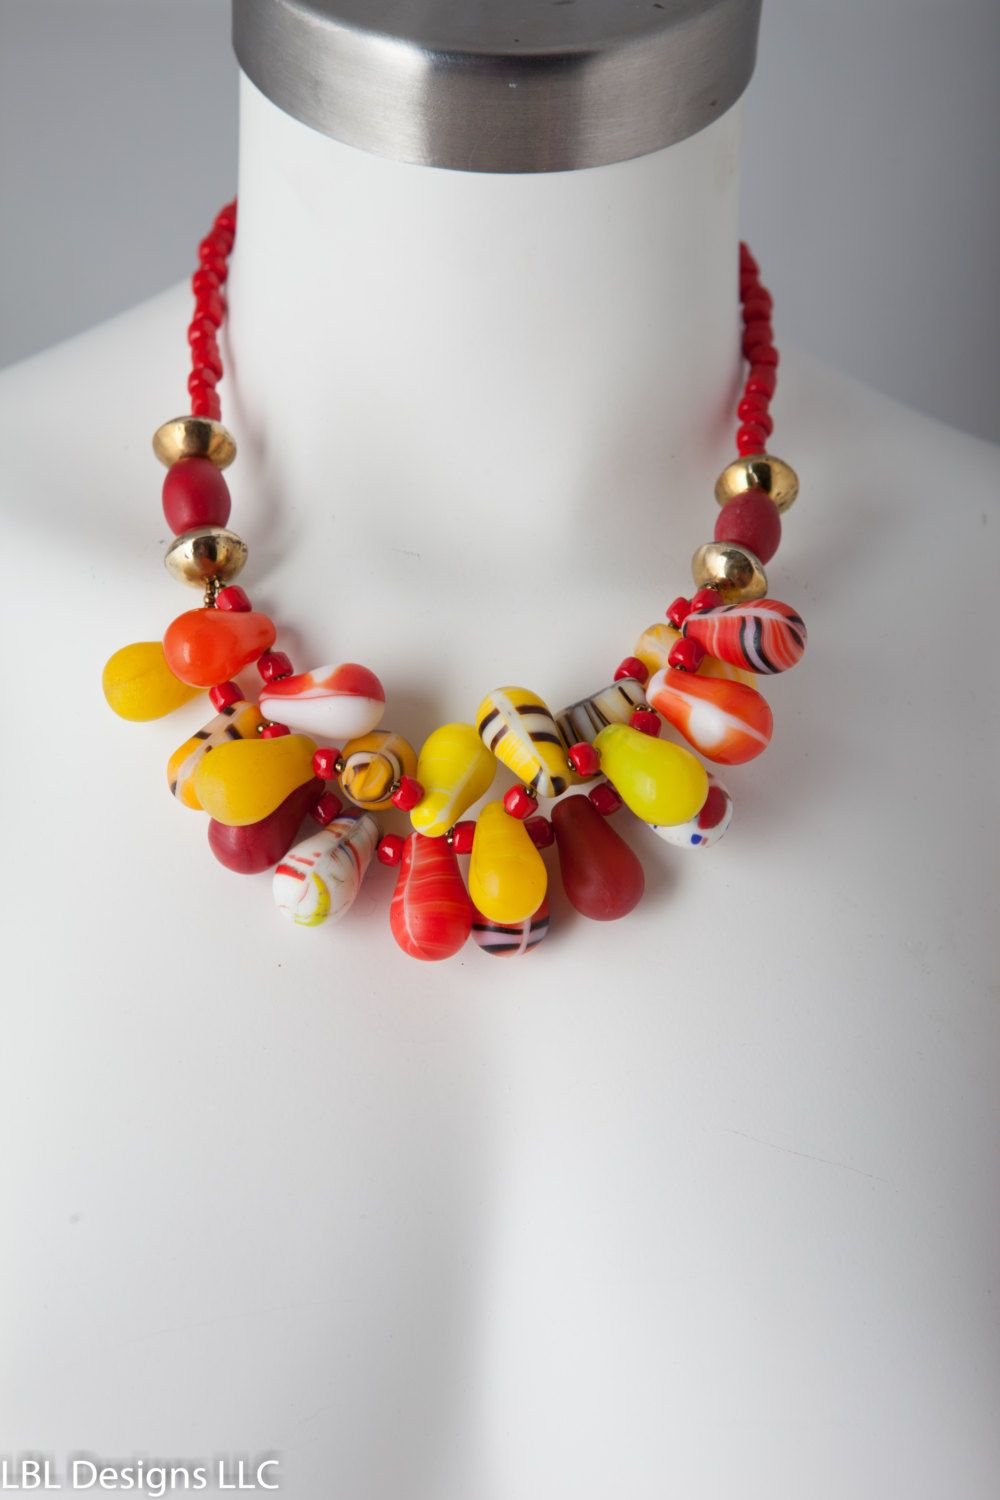 Old Handmade Mali Wedding Beads AFRICAN WEDDING BEADS African Vulcanite African Coin Silver Beads Statement Necklace